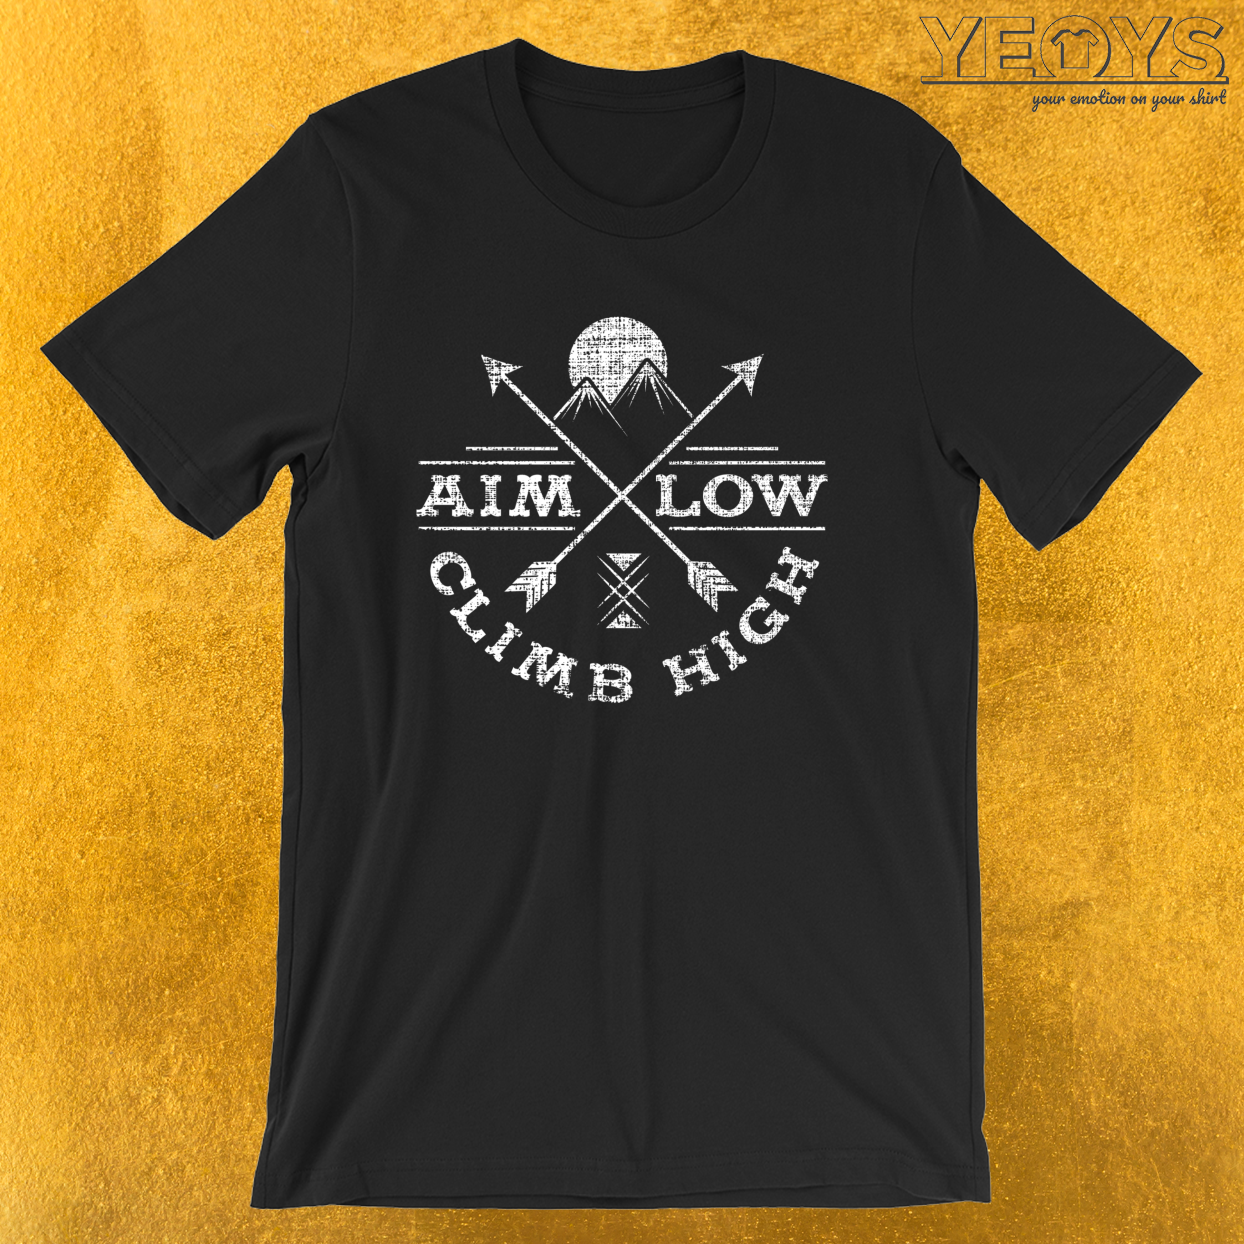 Aim Low Climb High – Rock Climbing Tee